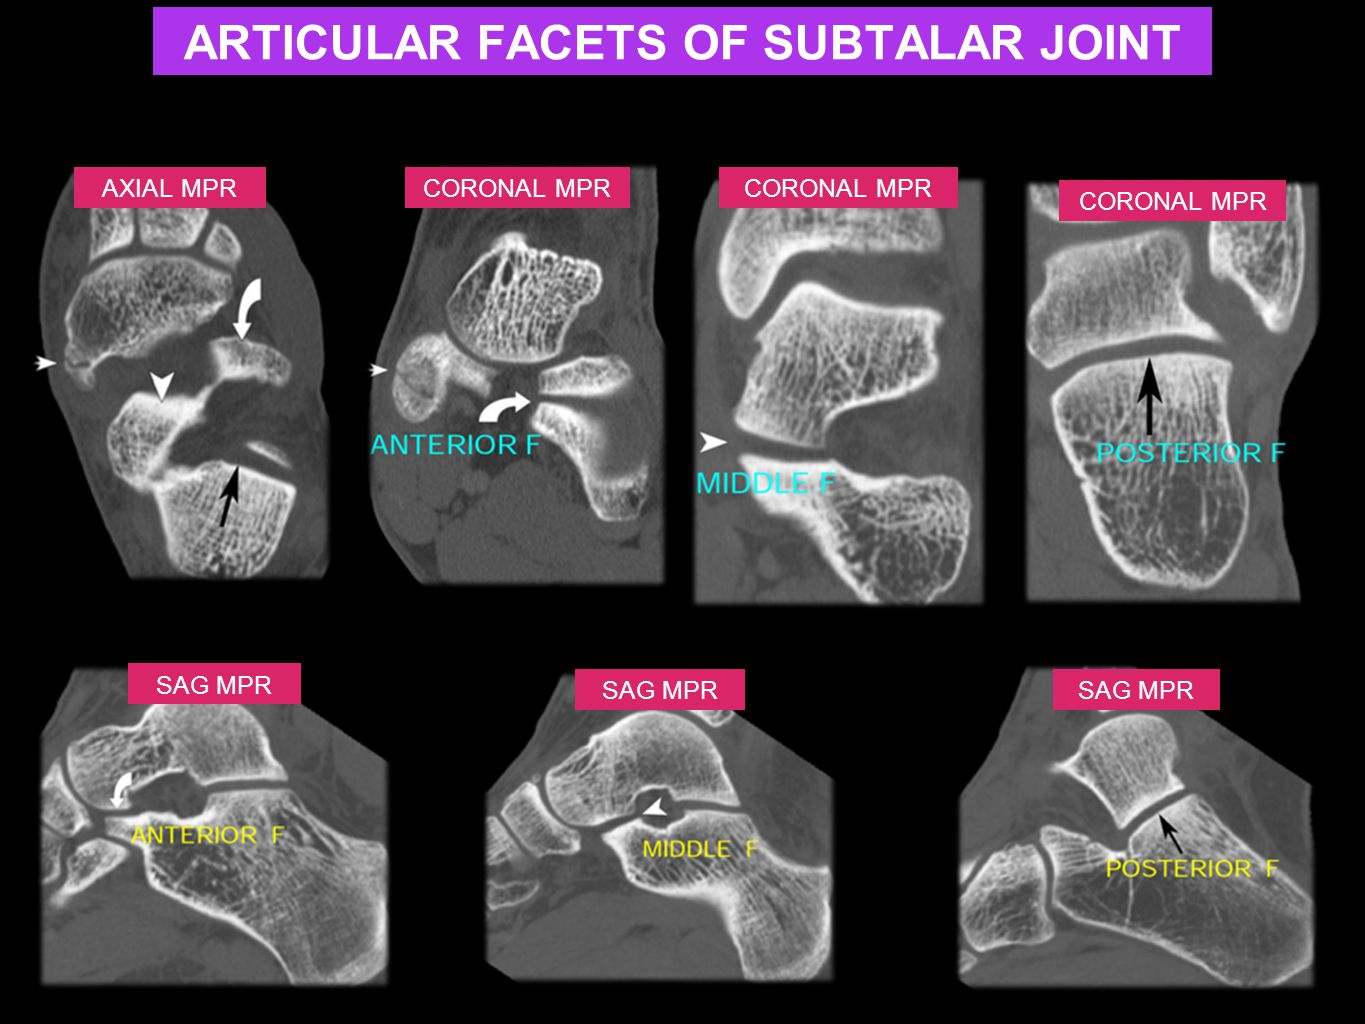 AXIAL MPRCORONAL MPR SAG MPR CORONAL MPR SAG MPR ARTICULAR FACETS OF SUBTALAR JOINT